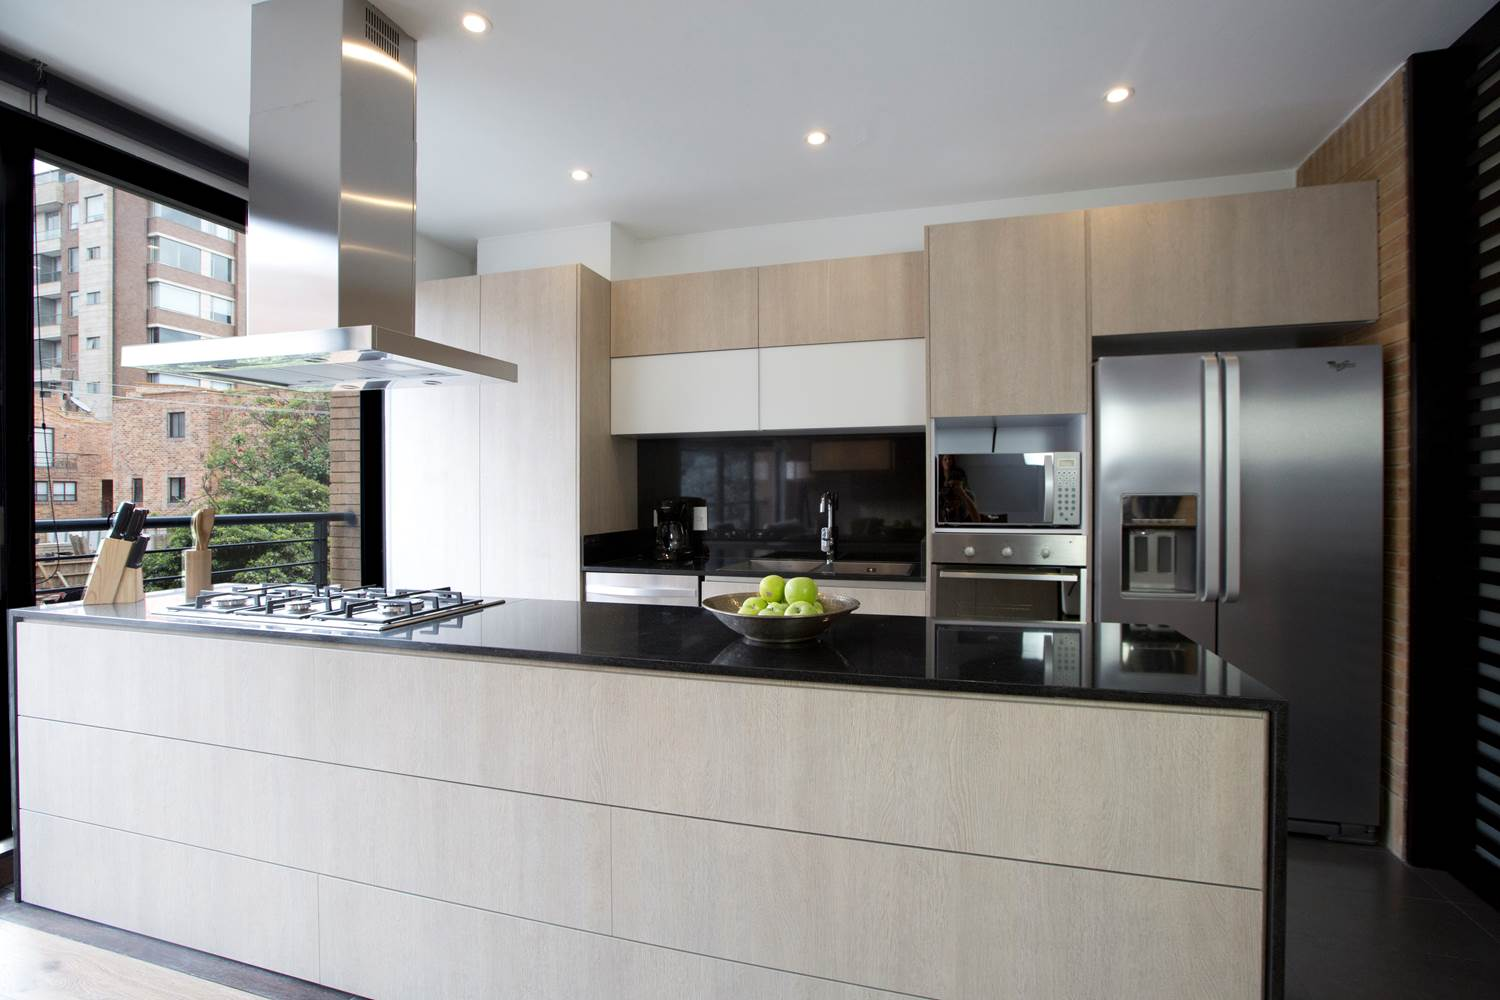 Sleek kitchen at Attik Apartments